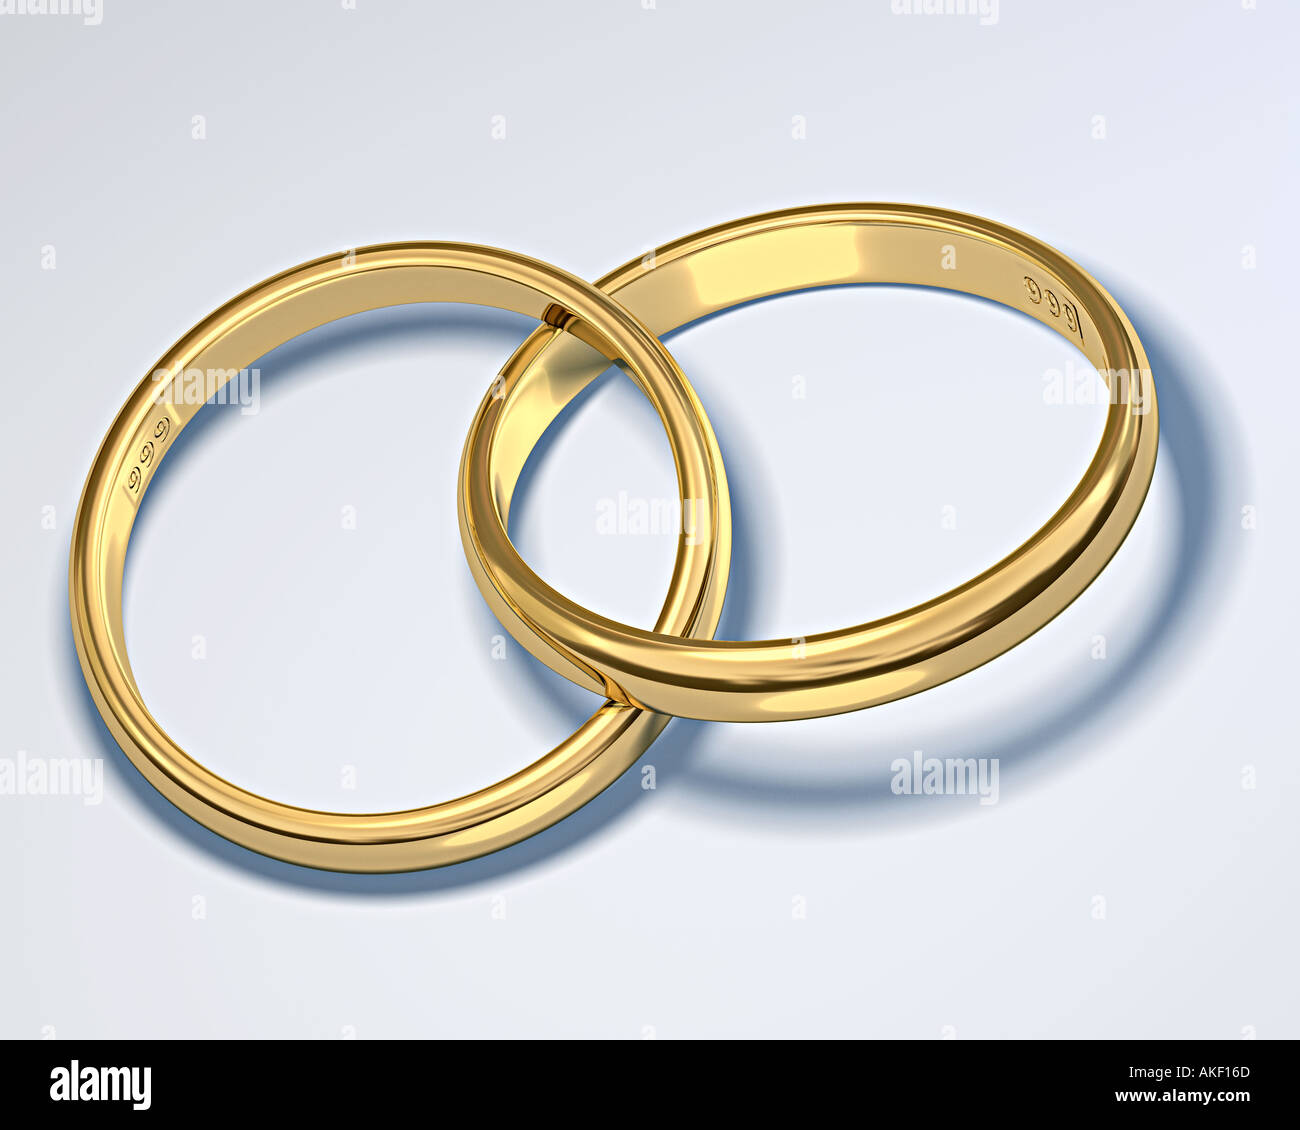 Wedding rings as a symbol